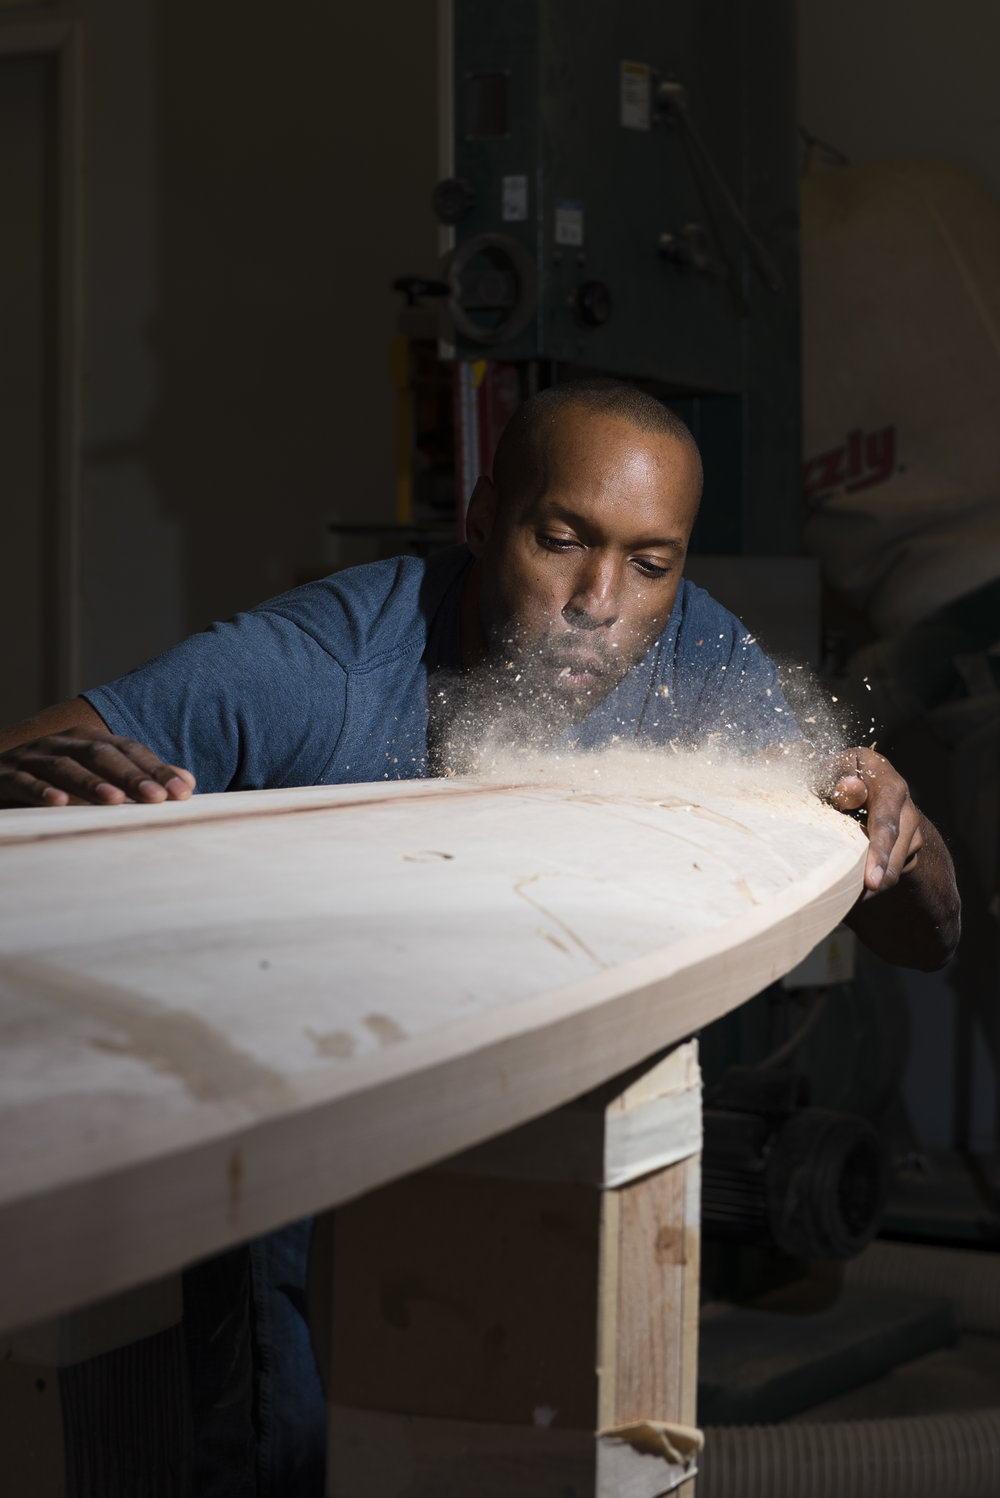 Tony working on a board